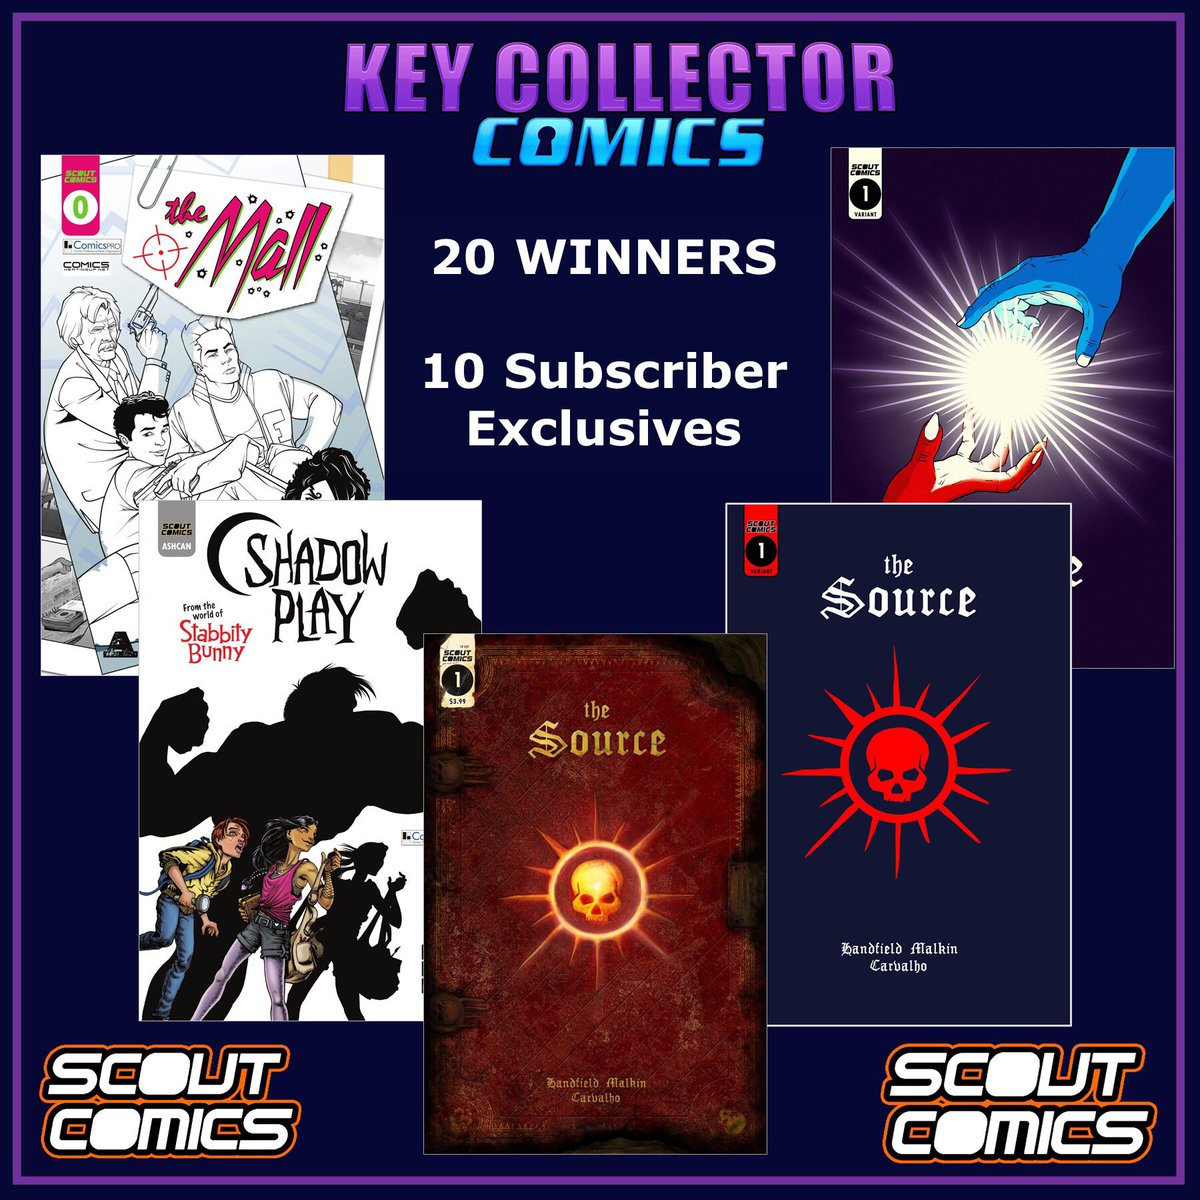 Key Collector Comics Mobile App on Twitter: